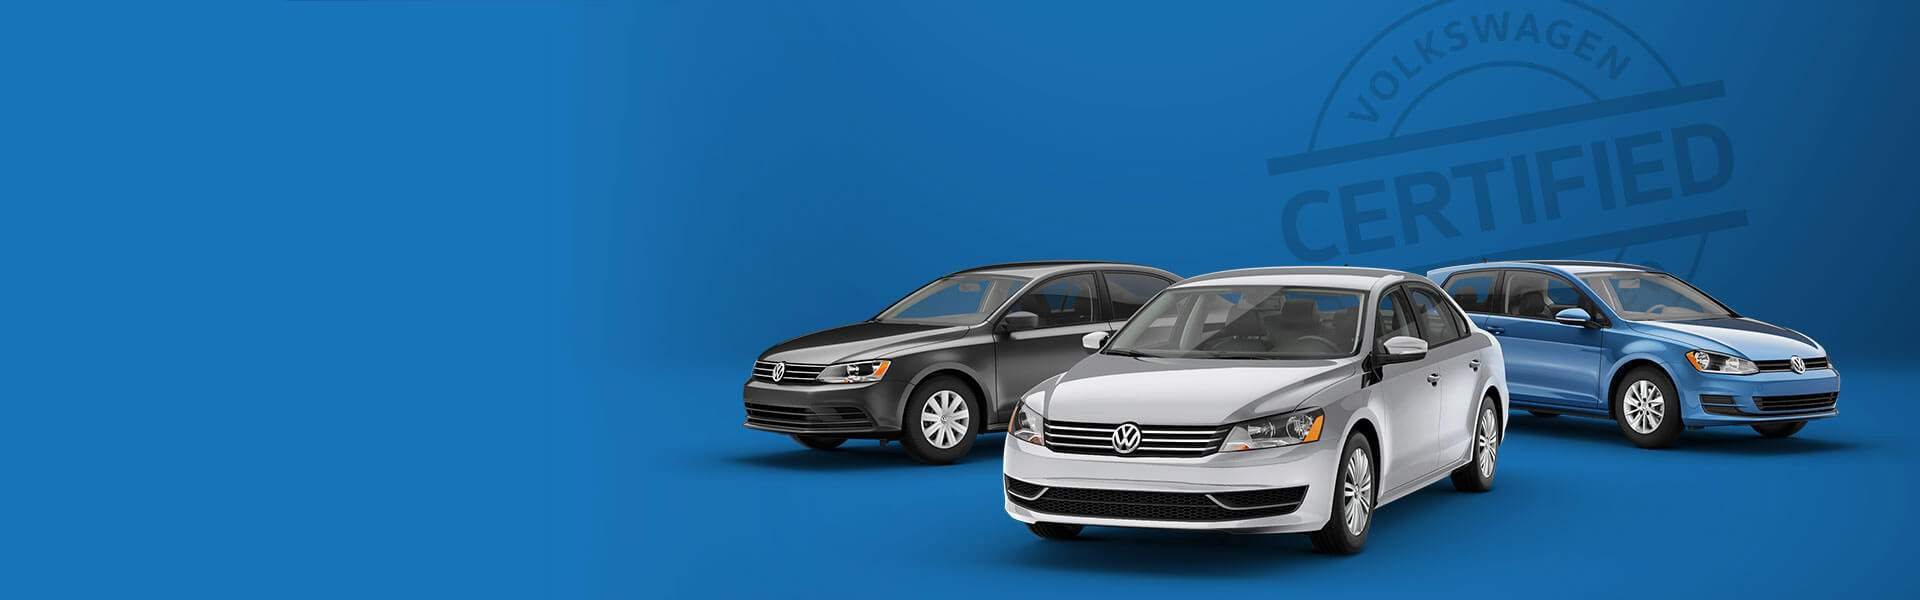 Volkswagen Certified Pre-Owned in North Charleston, SC